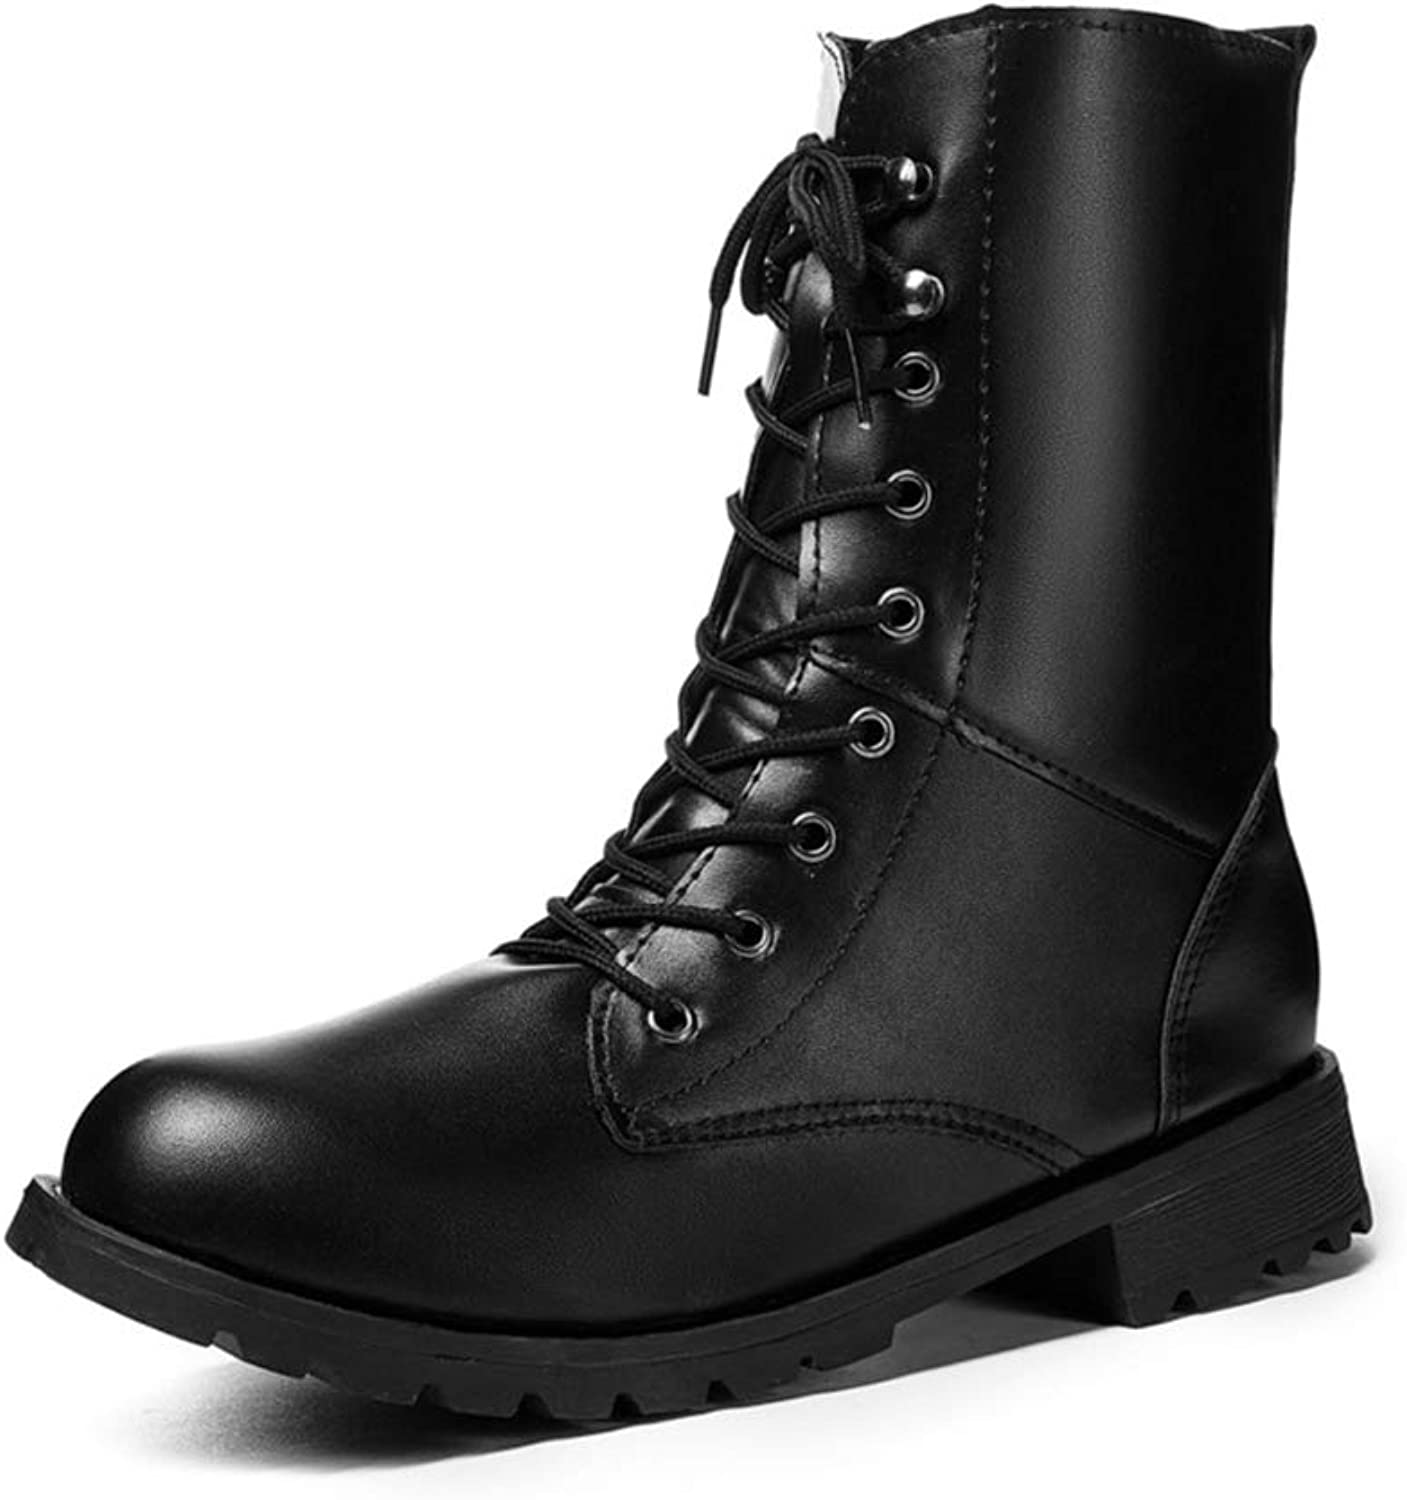 Women's Fashion Round Toe Upper Lace-up Ankle Boots Martin Booties Knight Boots Combat Boots